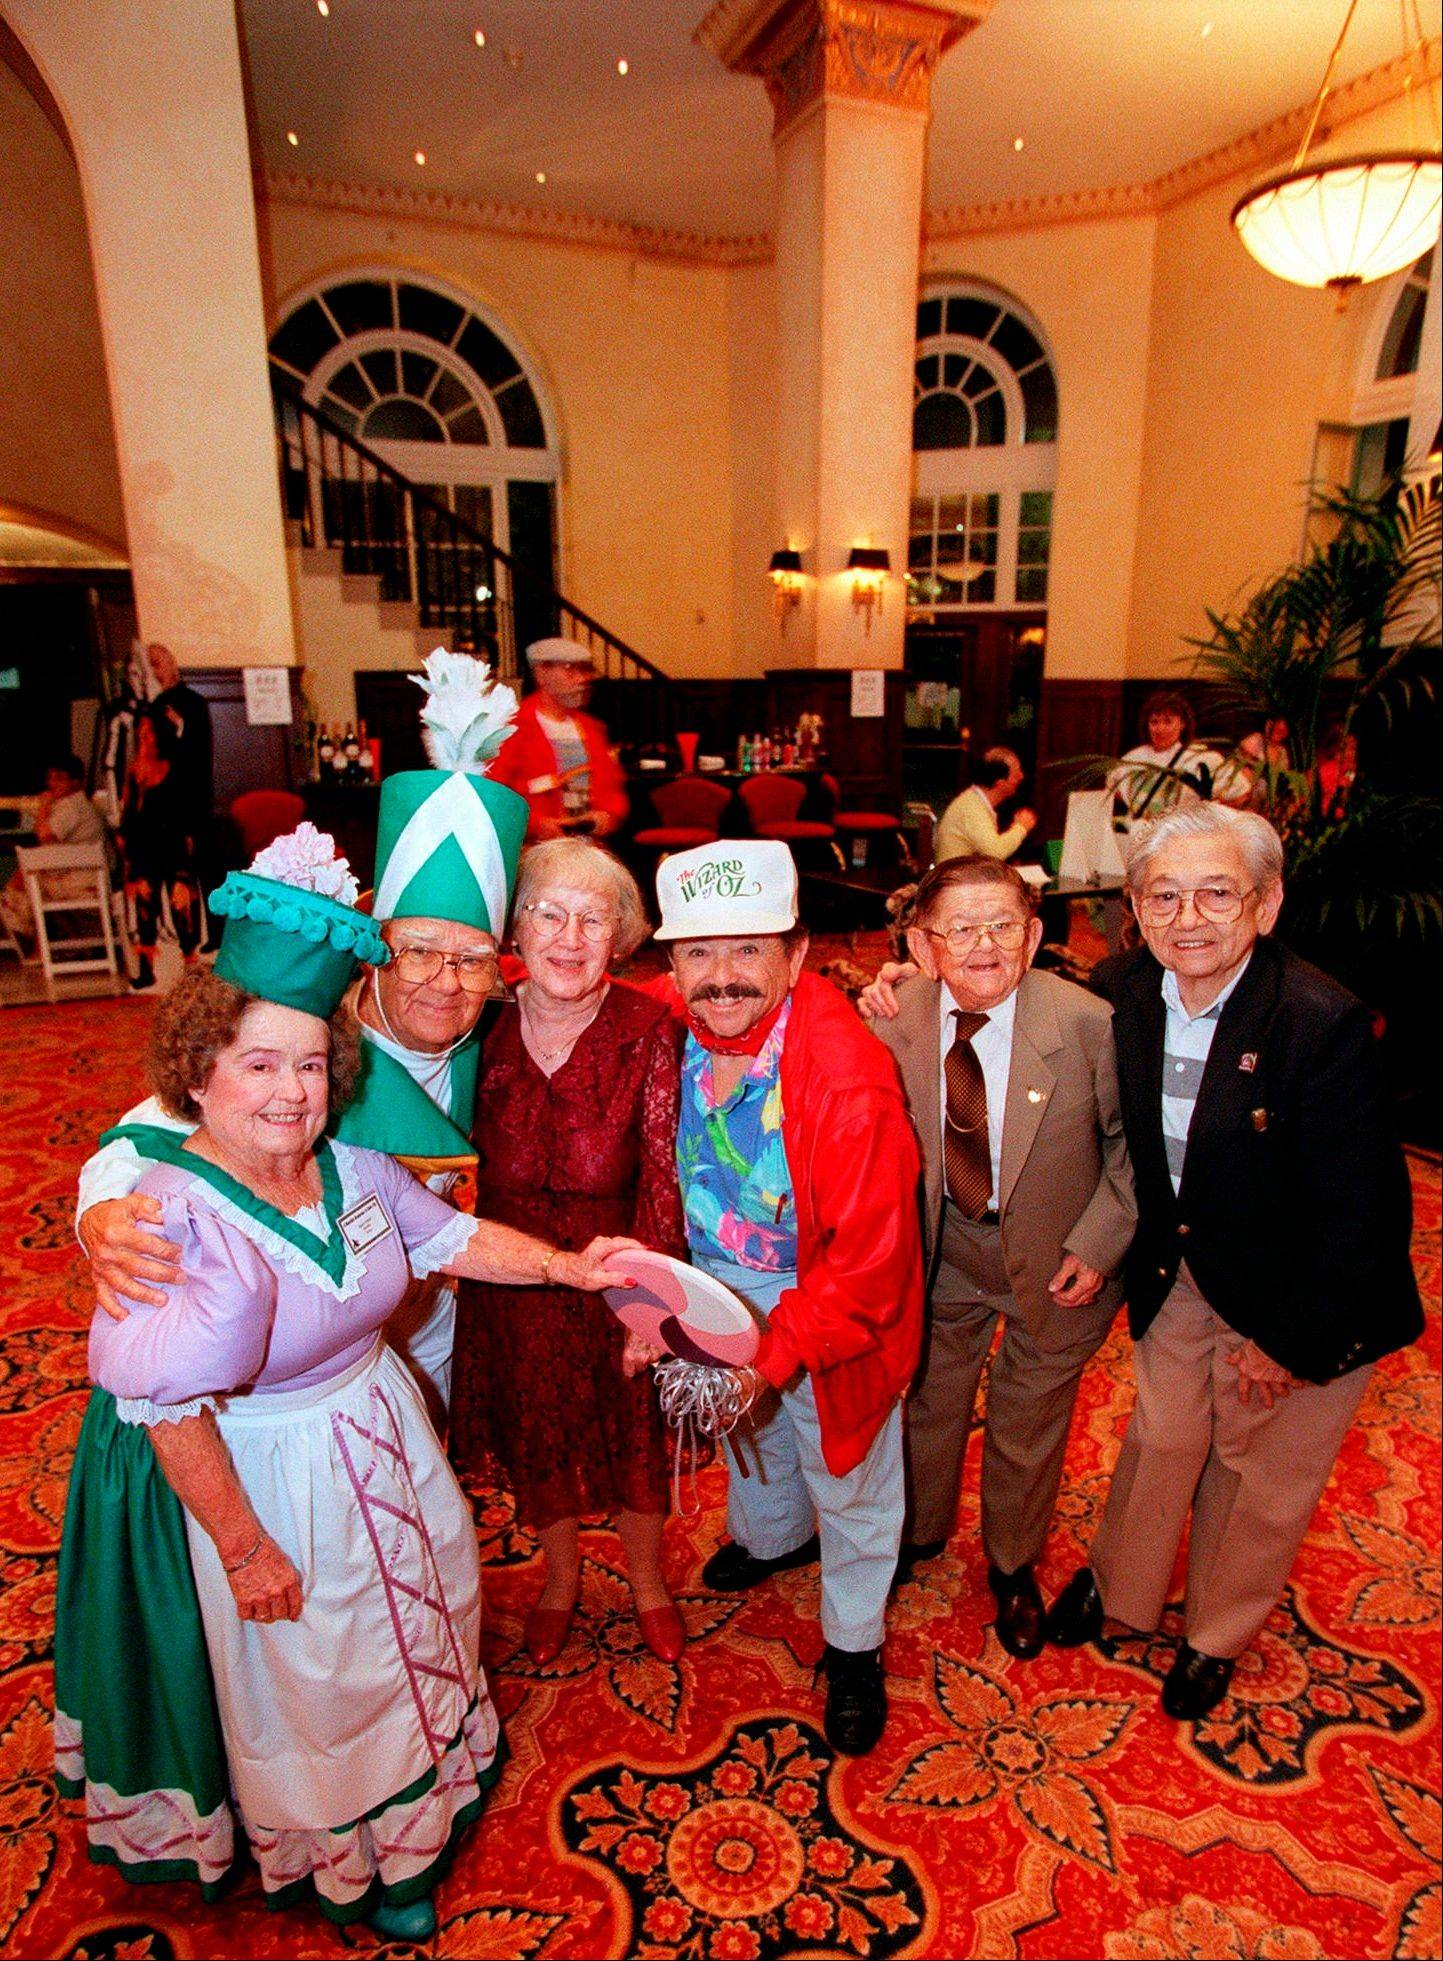 "Cast members of the Munchkins from ""The Wizard of Oz,"" from left, Margaret Pellegrini, Clarence Swensen, Ruth Duccini, Jerry Maren, Karl Slover, and Mickey Carroll."